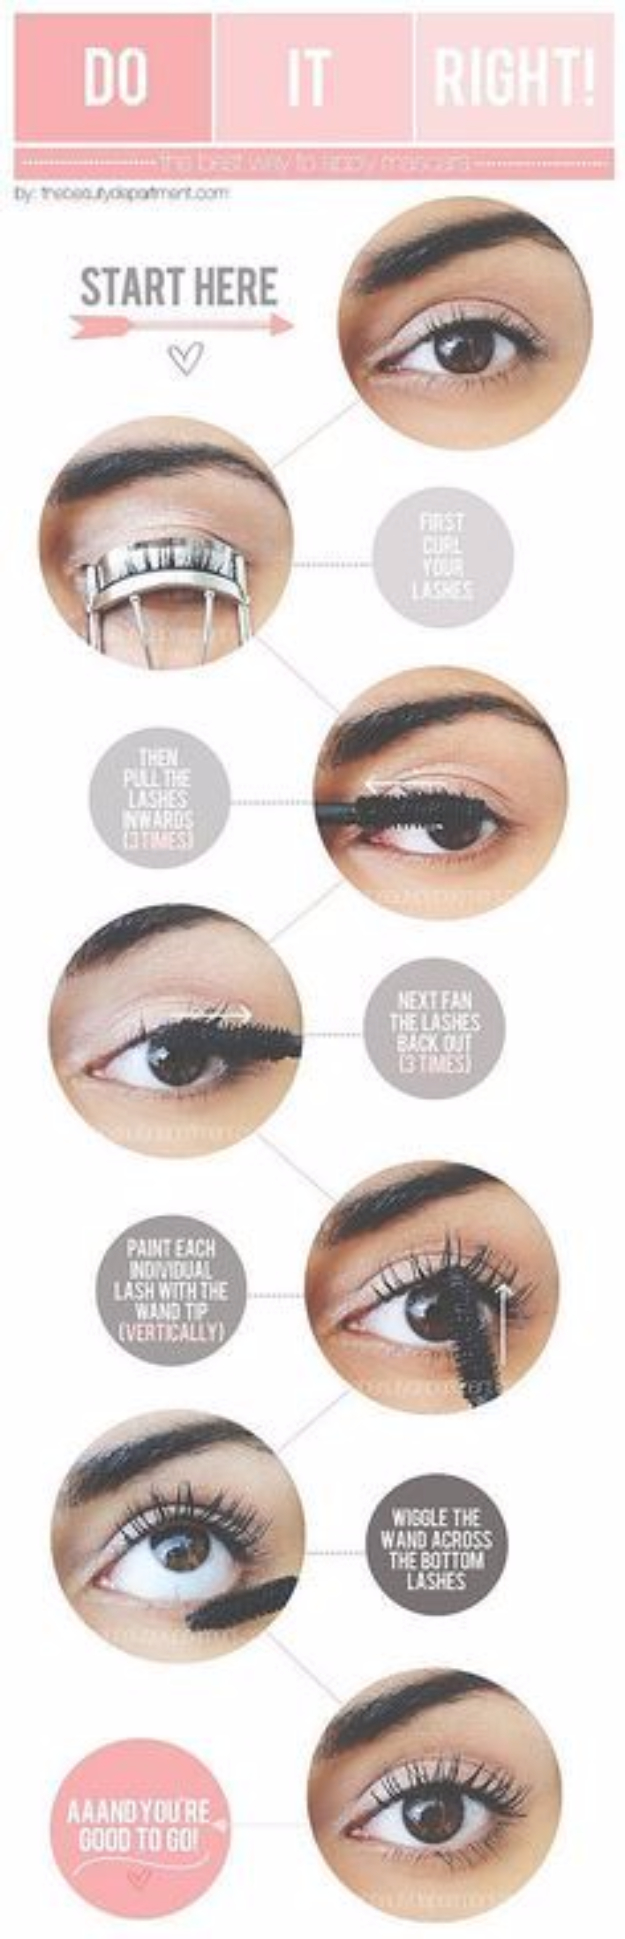 DIY Beauty Hacks - Apply Mascara Perfectly - Cool Tips for Makeup, Hair and Nails - Step by Step Tutorials for Fixing Broken Makeup, Eye Shadow, Mascara, Foundation - Quick Beauty Ideas for Best Looks in A Hurry http://diyjoy.com/diy-beauty-hacks